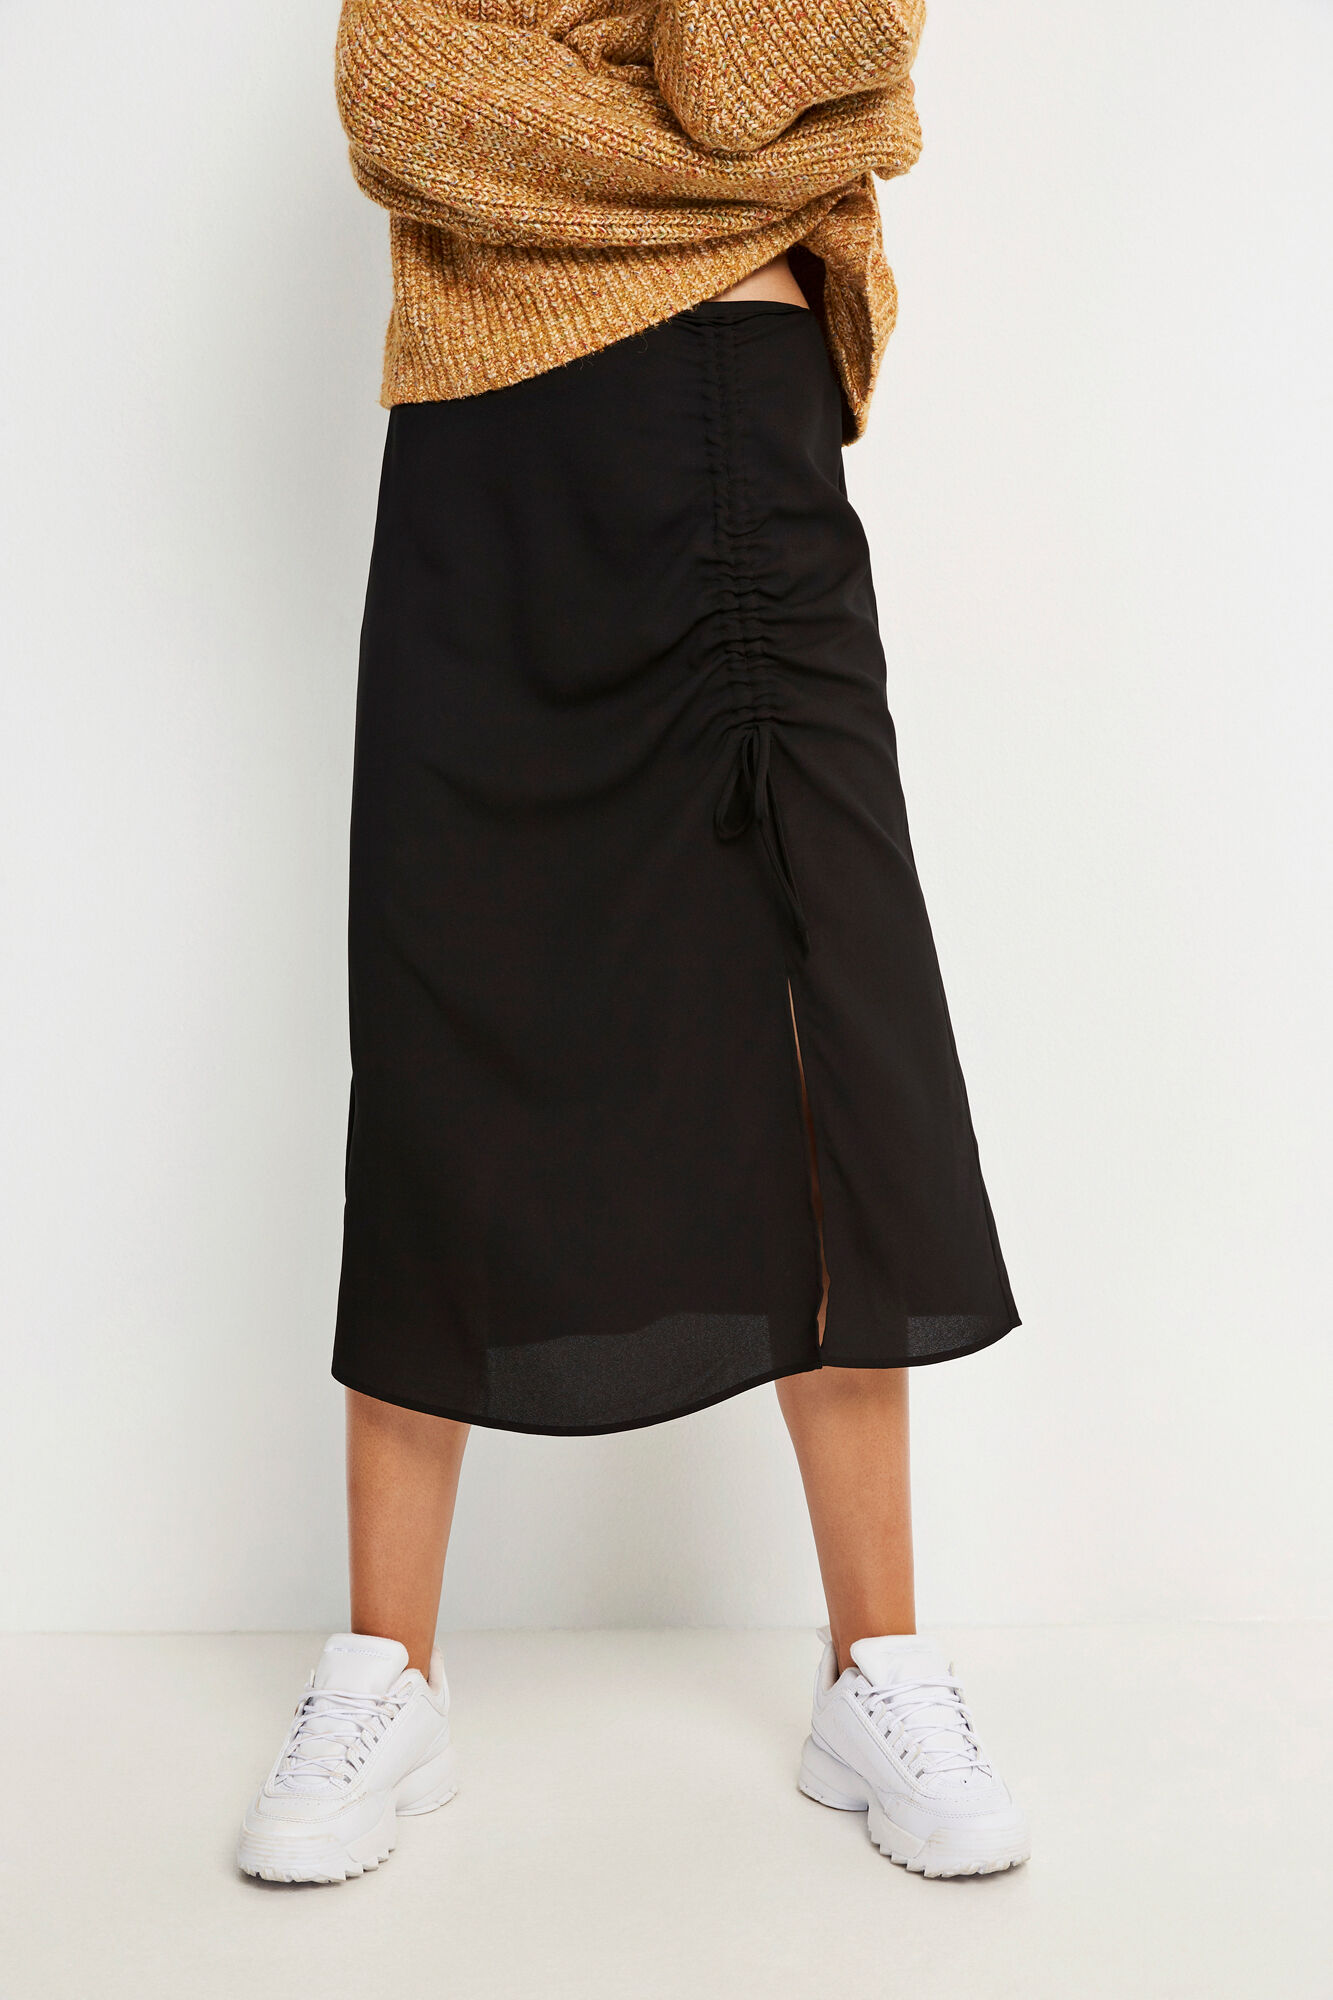 ENTRAFFIC SKIRT 6508